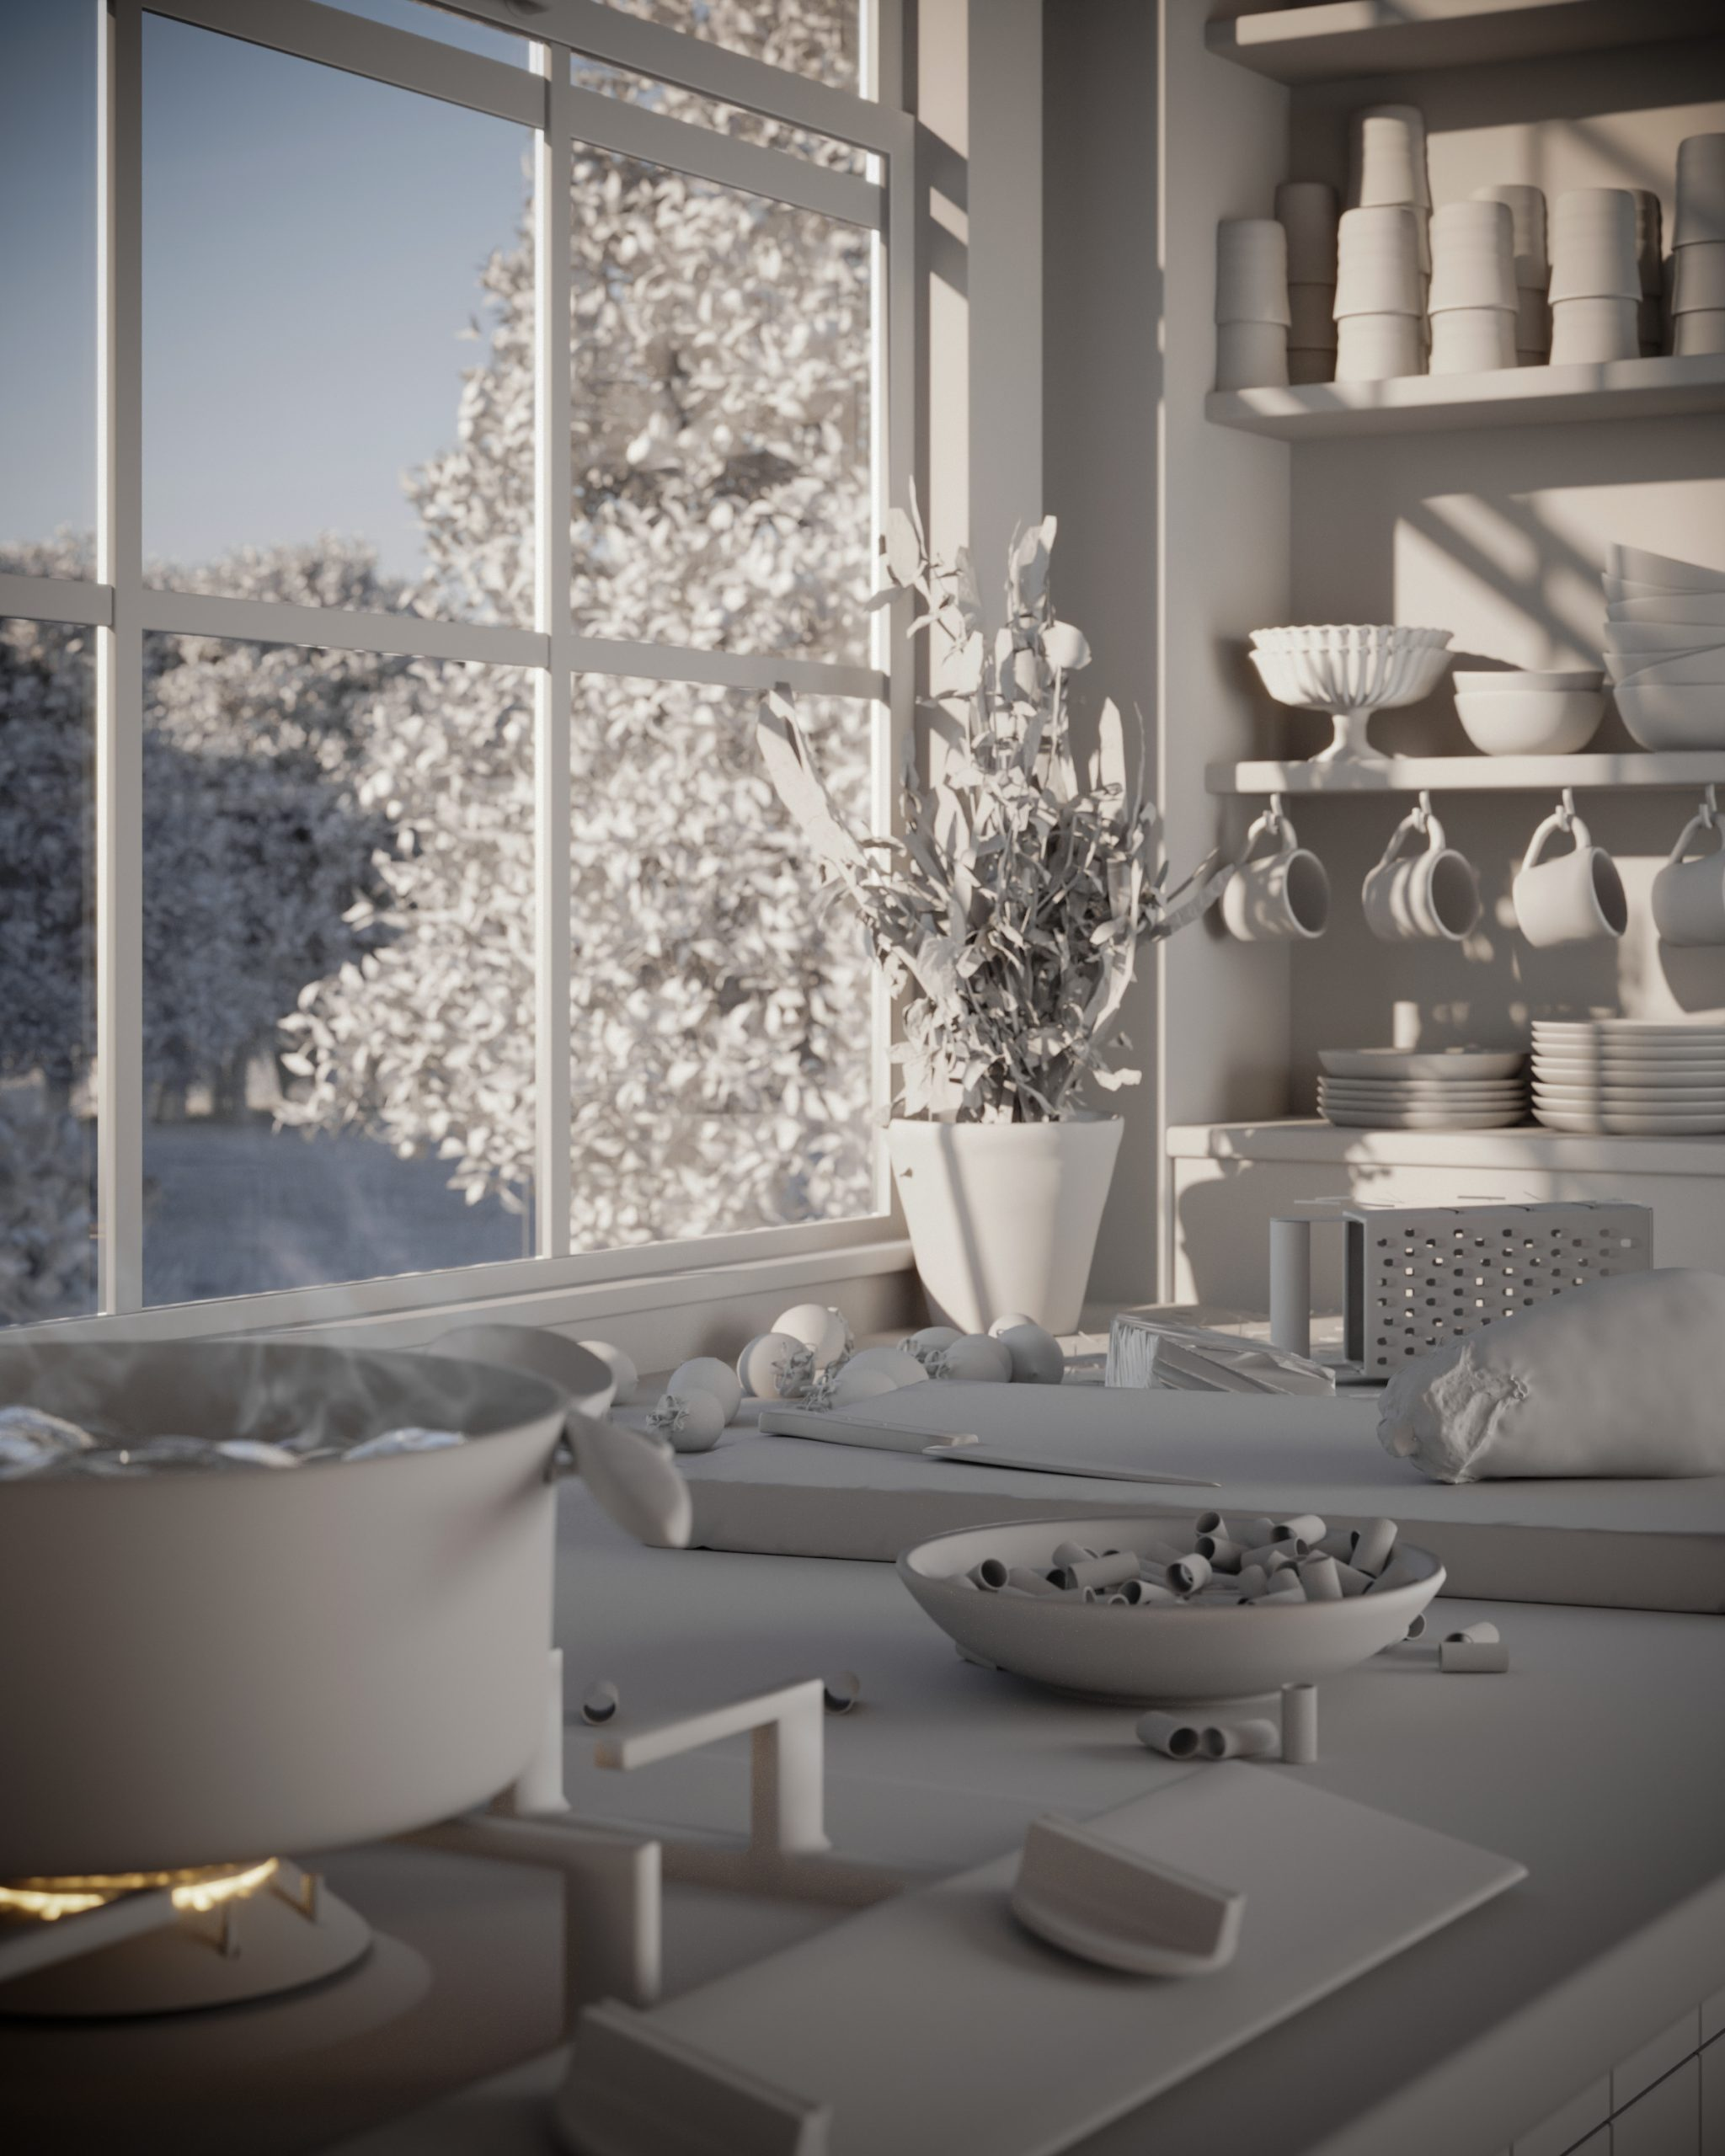 Amato_Clay_3Dflow_Competition